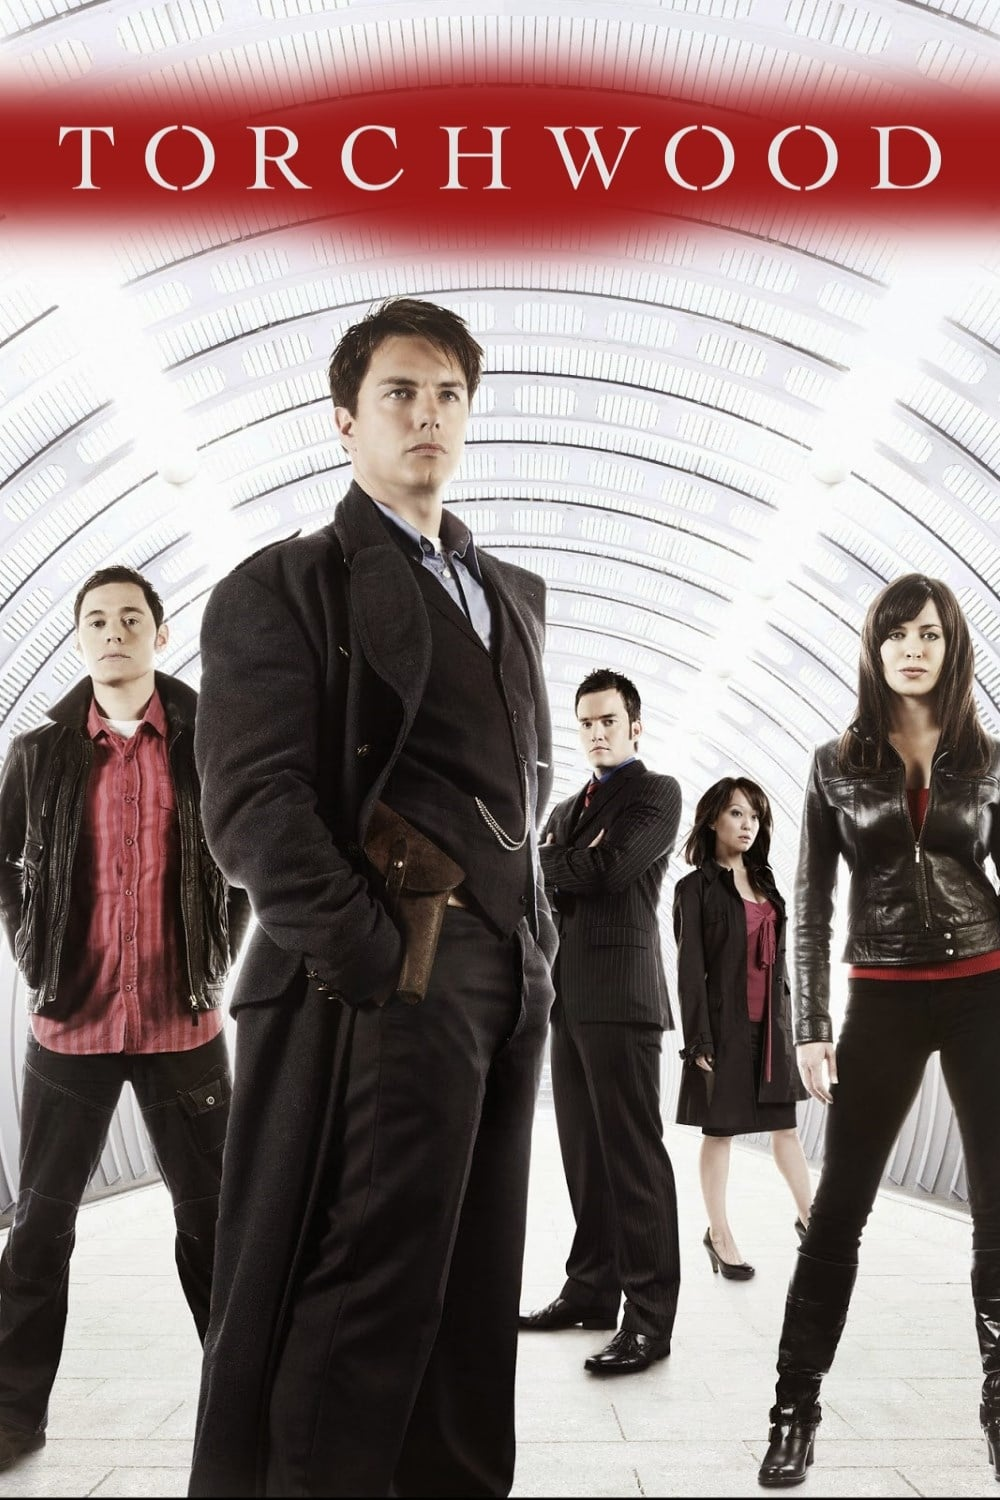 Torchwood Season 2